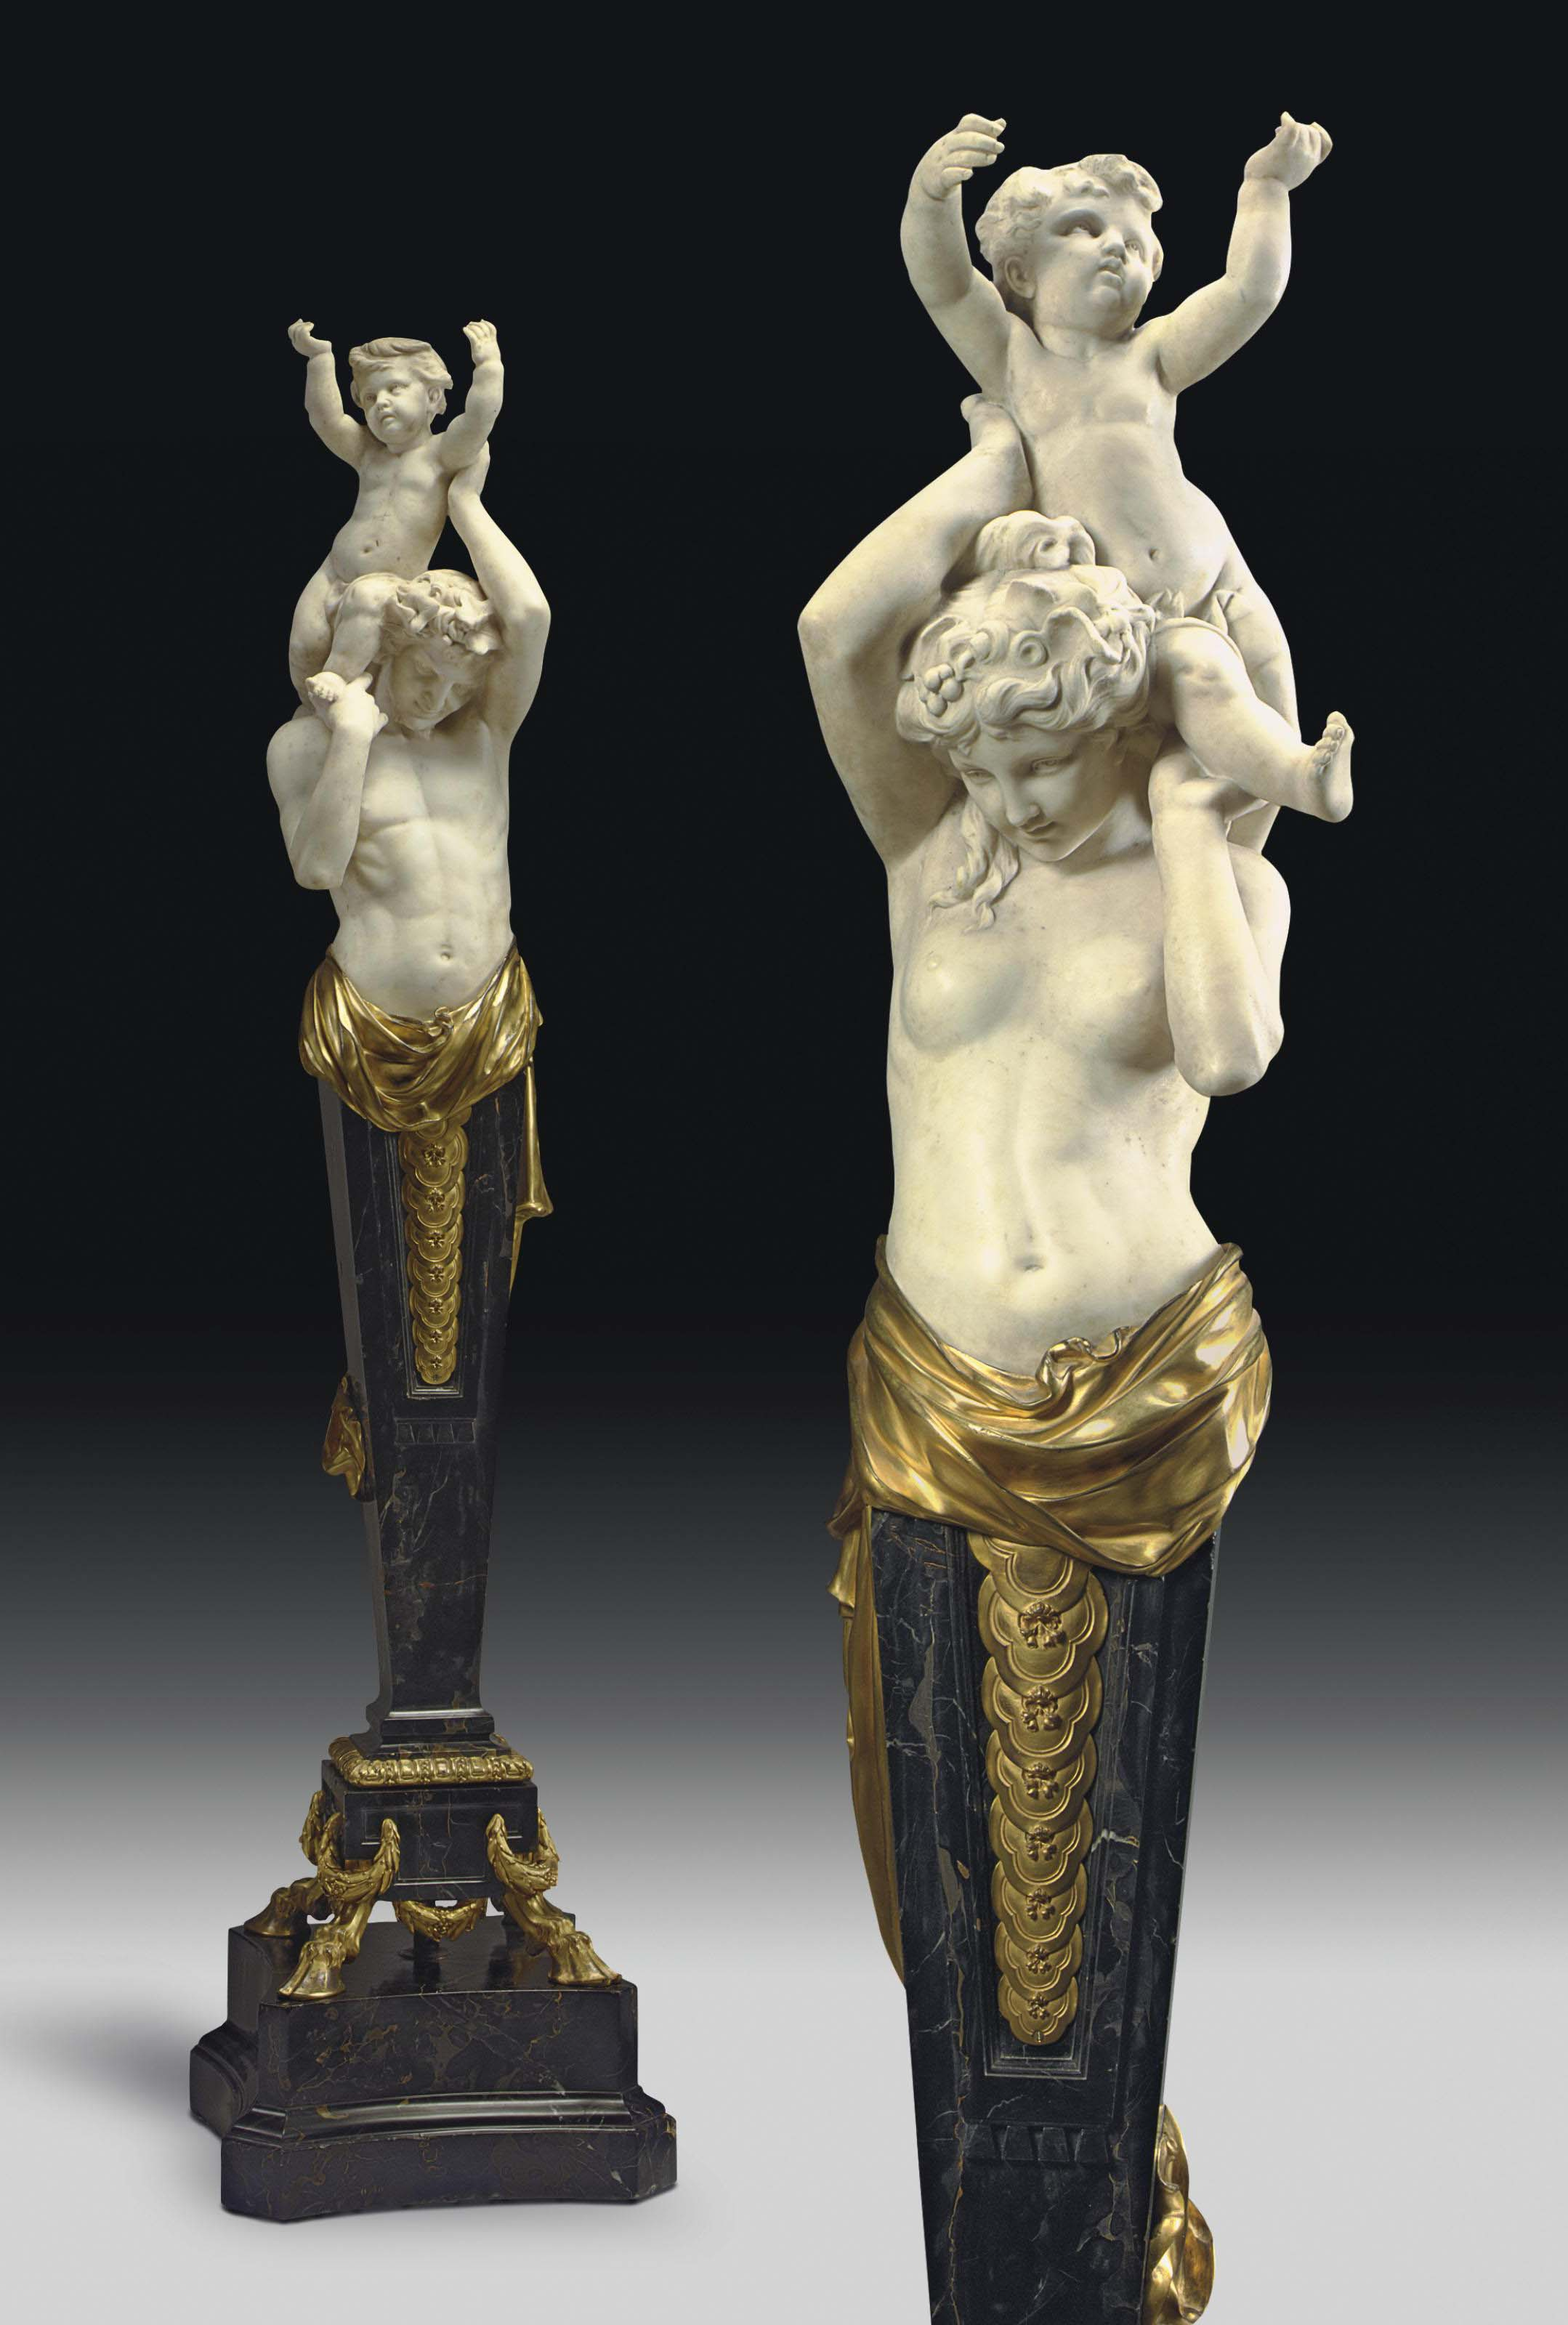 A MONUMENTAL PAIR OF AMERICAN ORMOLU-MOUNTED WHITE AND PORTOR MARBLE HERM FIGURES